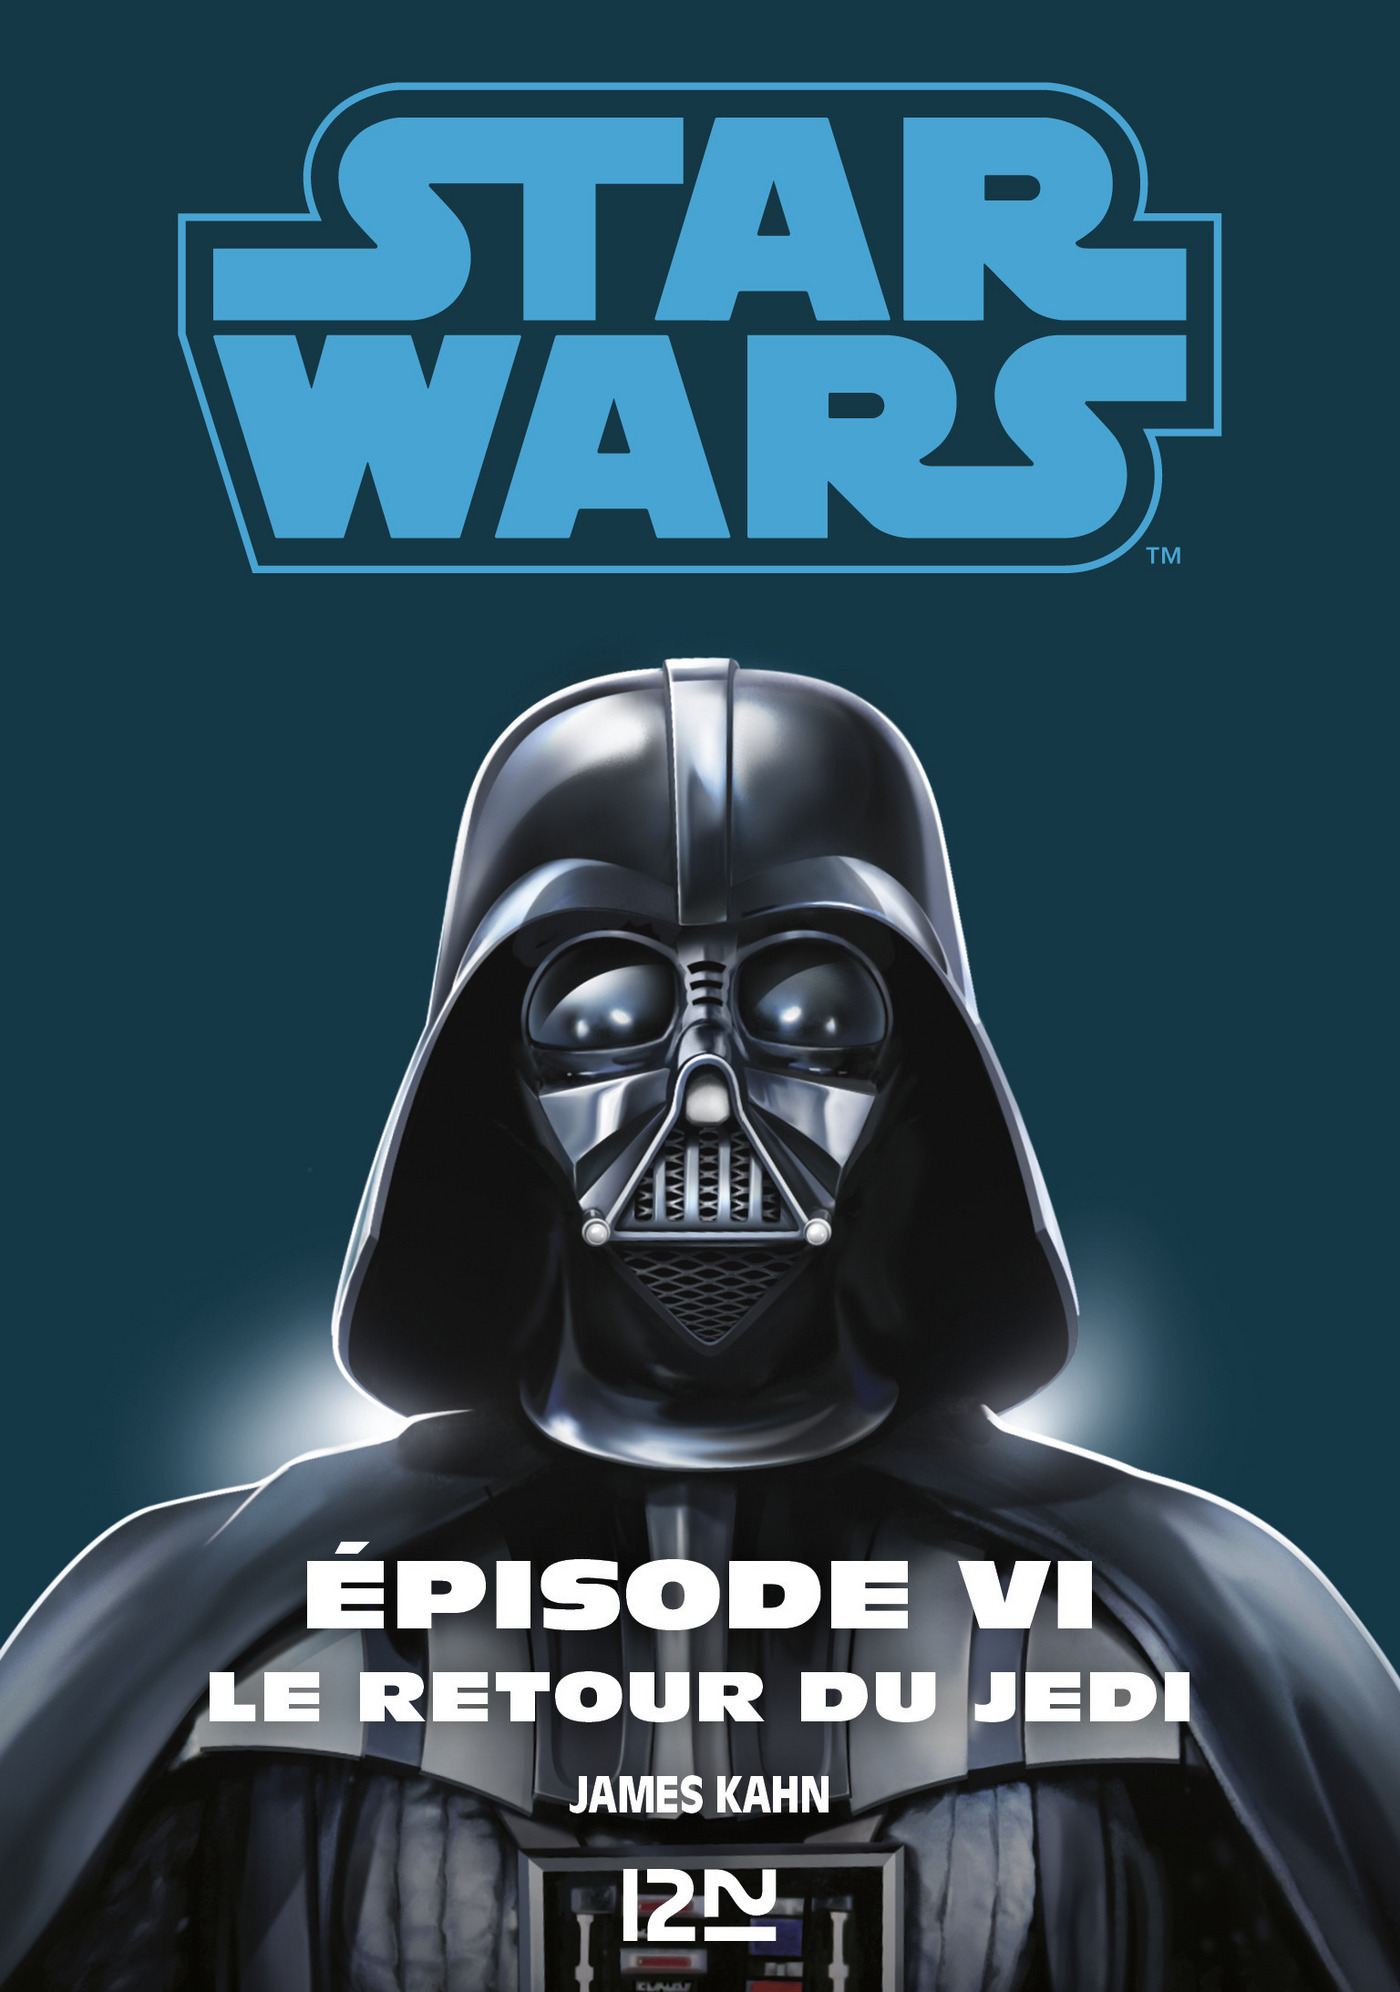 Star Wars épisode 6 : Le retour du jedi (ebook)